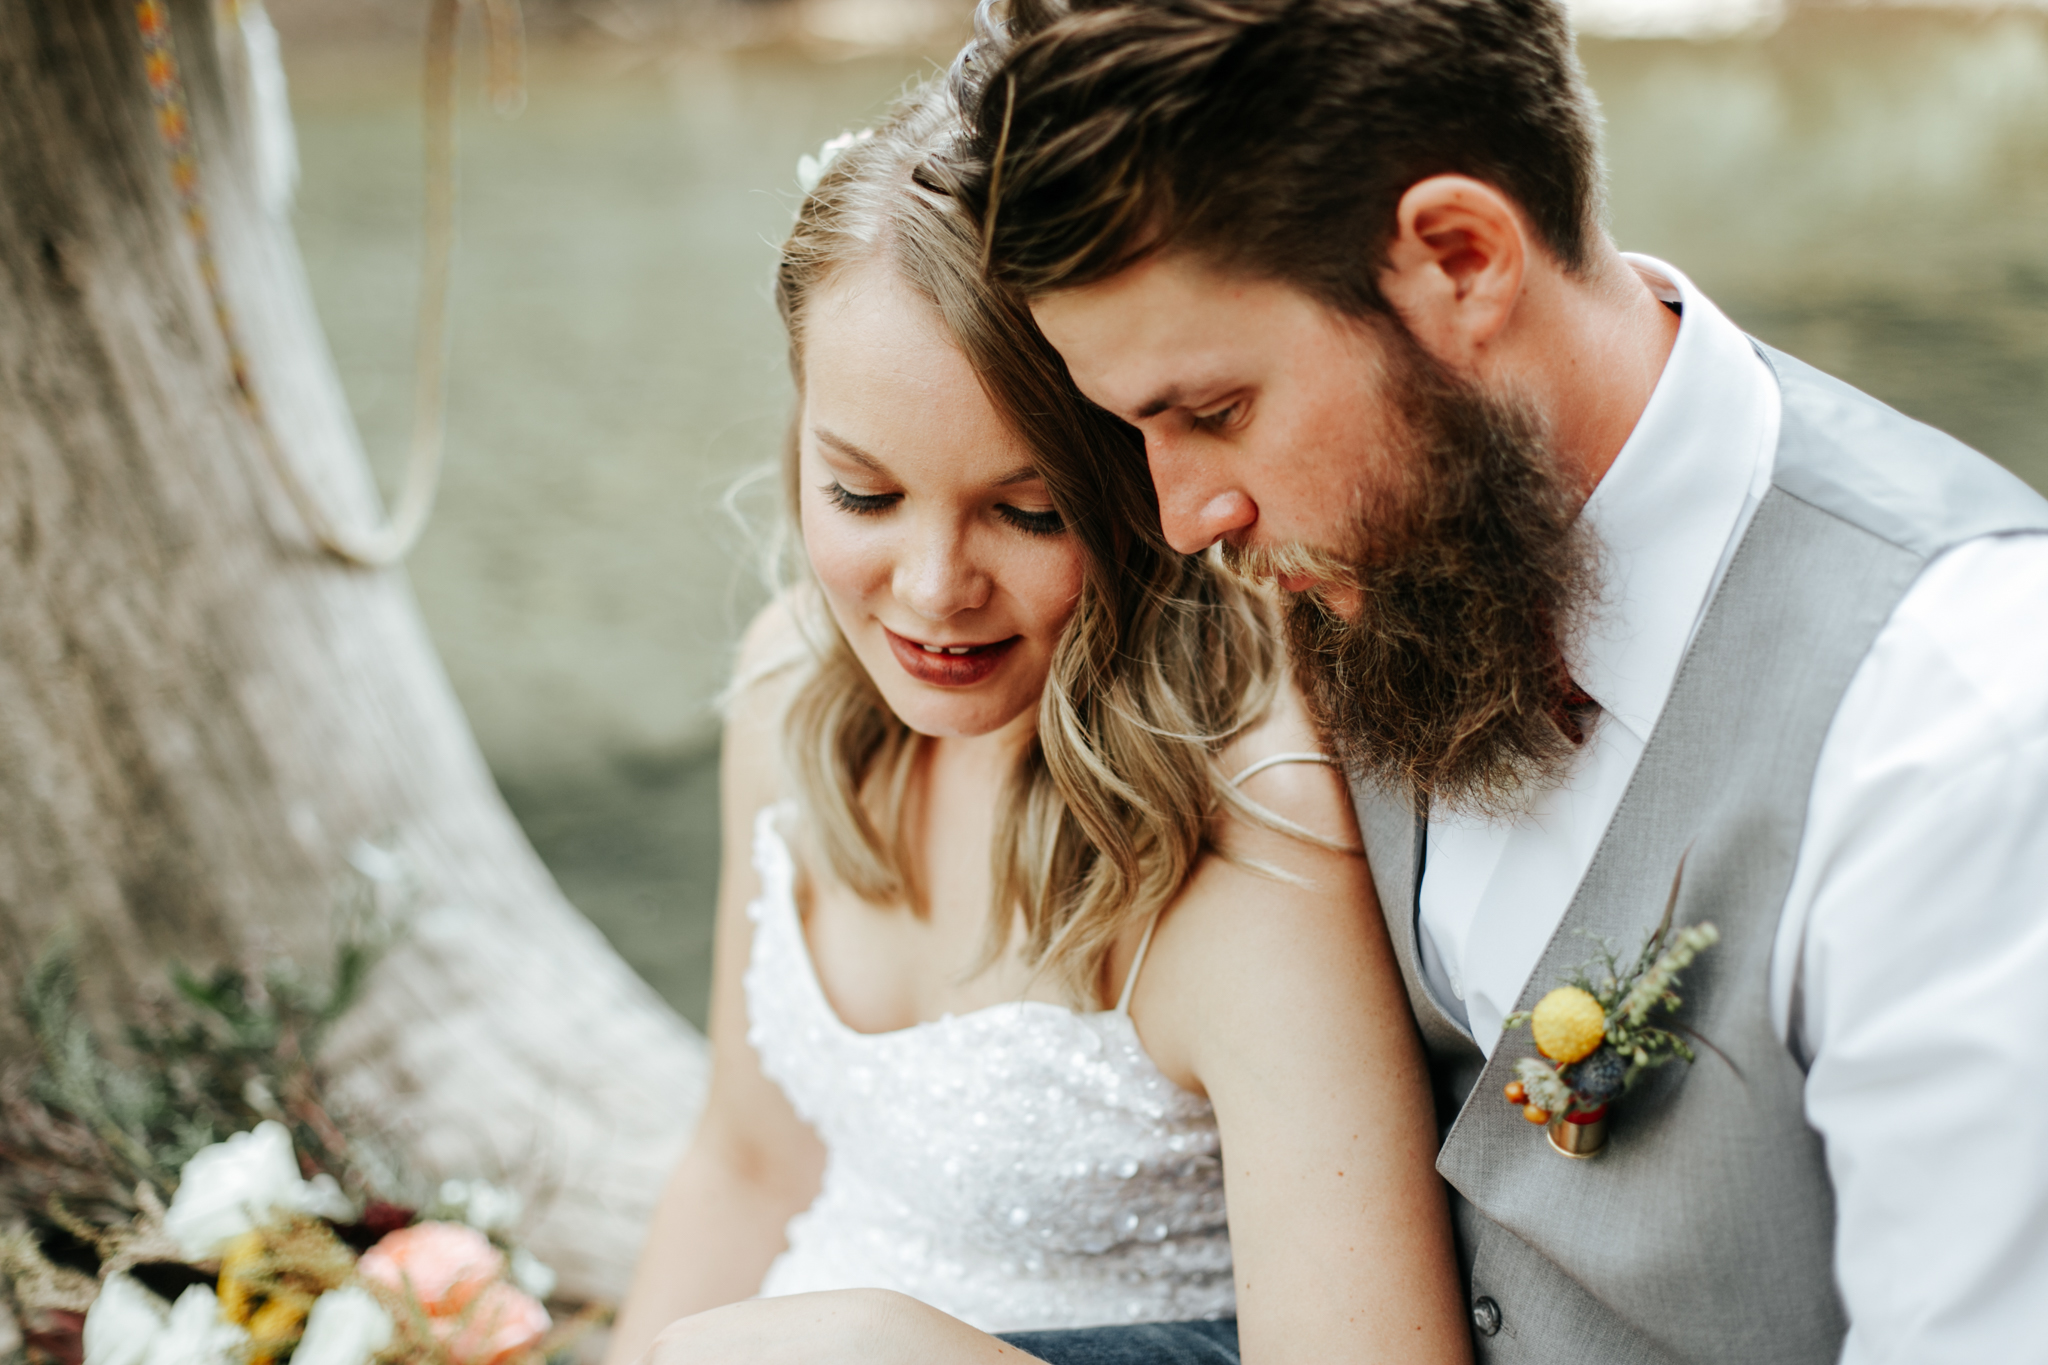 castle-mountain-wedding-photographer-love-and-be-loved-photography-lethbridge-pincher-creek-crowsnest-pass-yannick-rylee-photo-image-picture-144.jpg